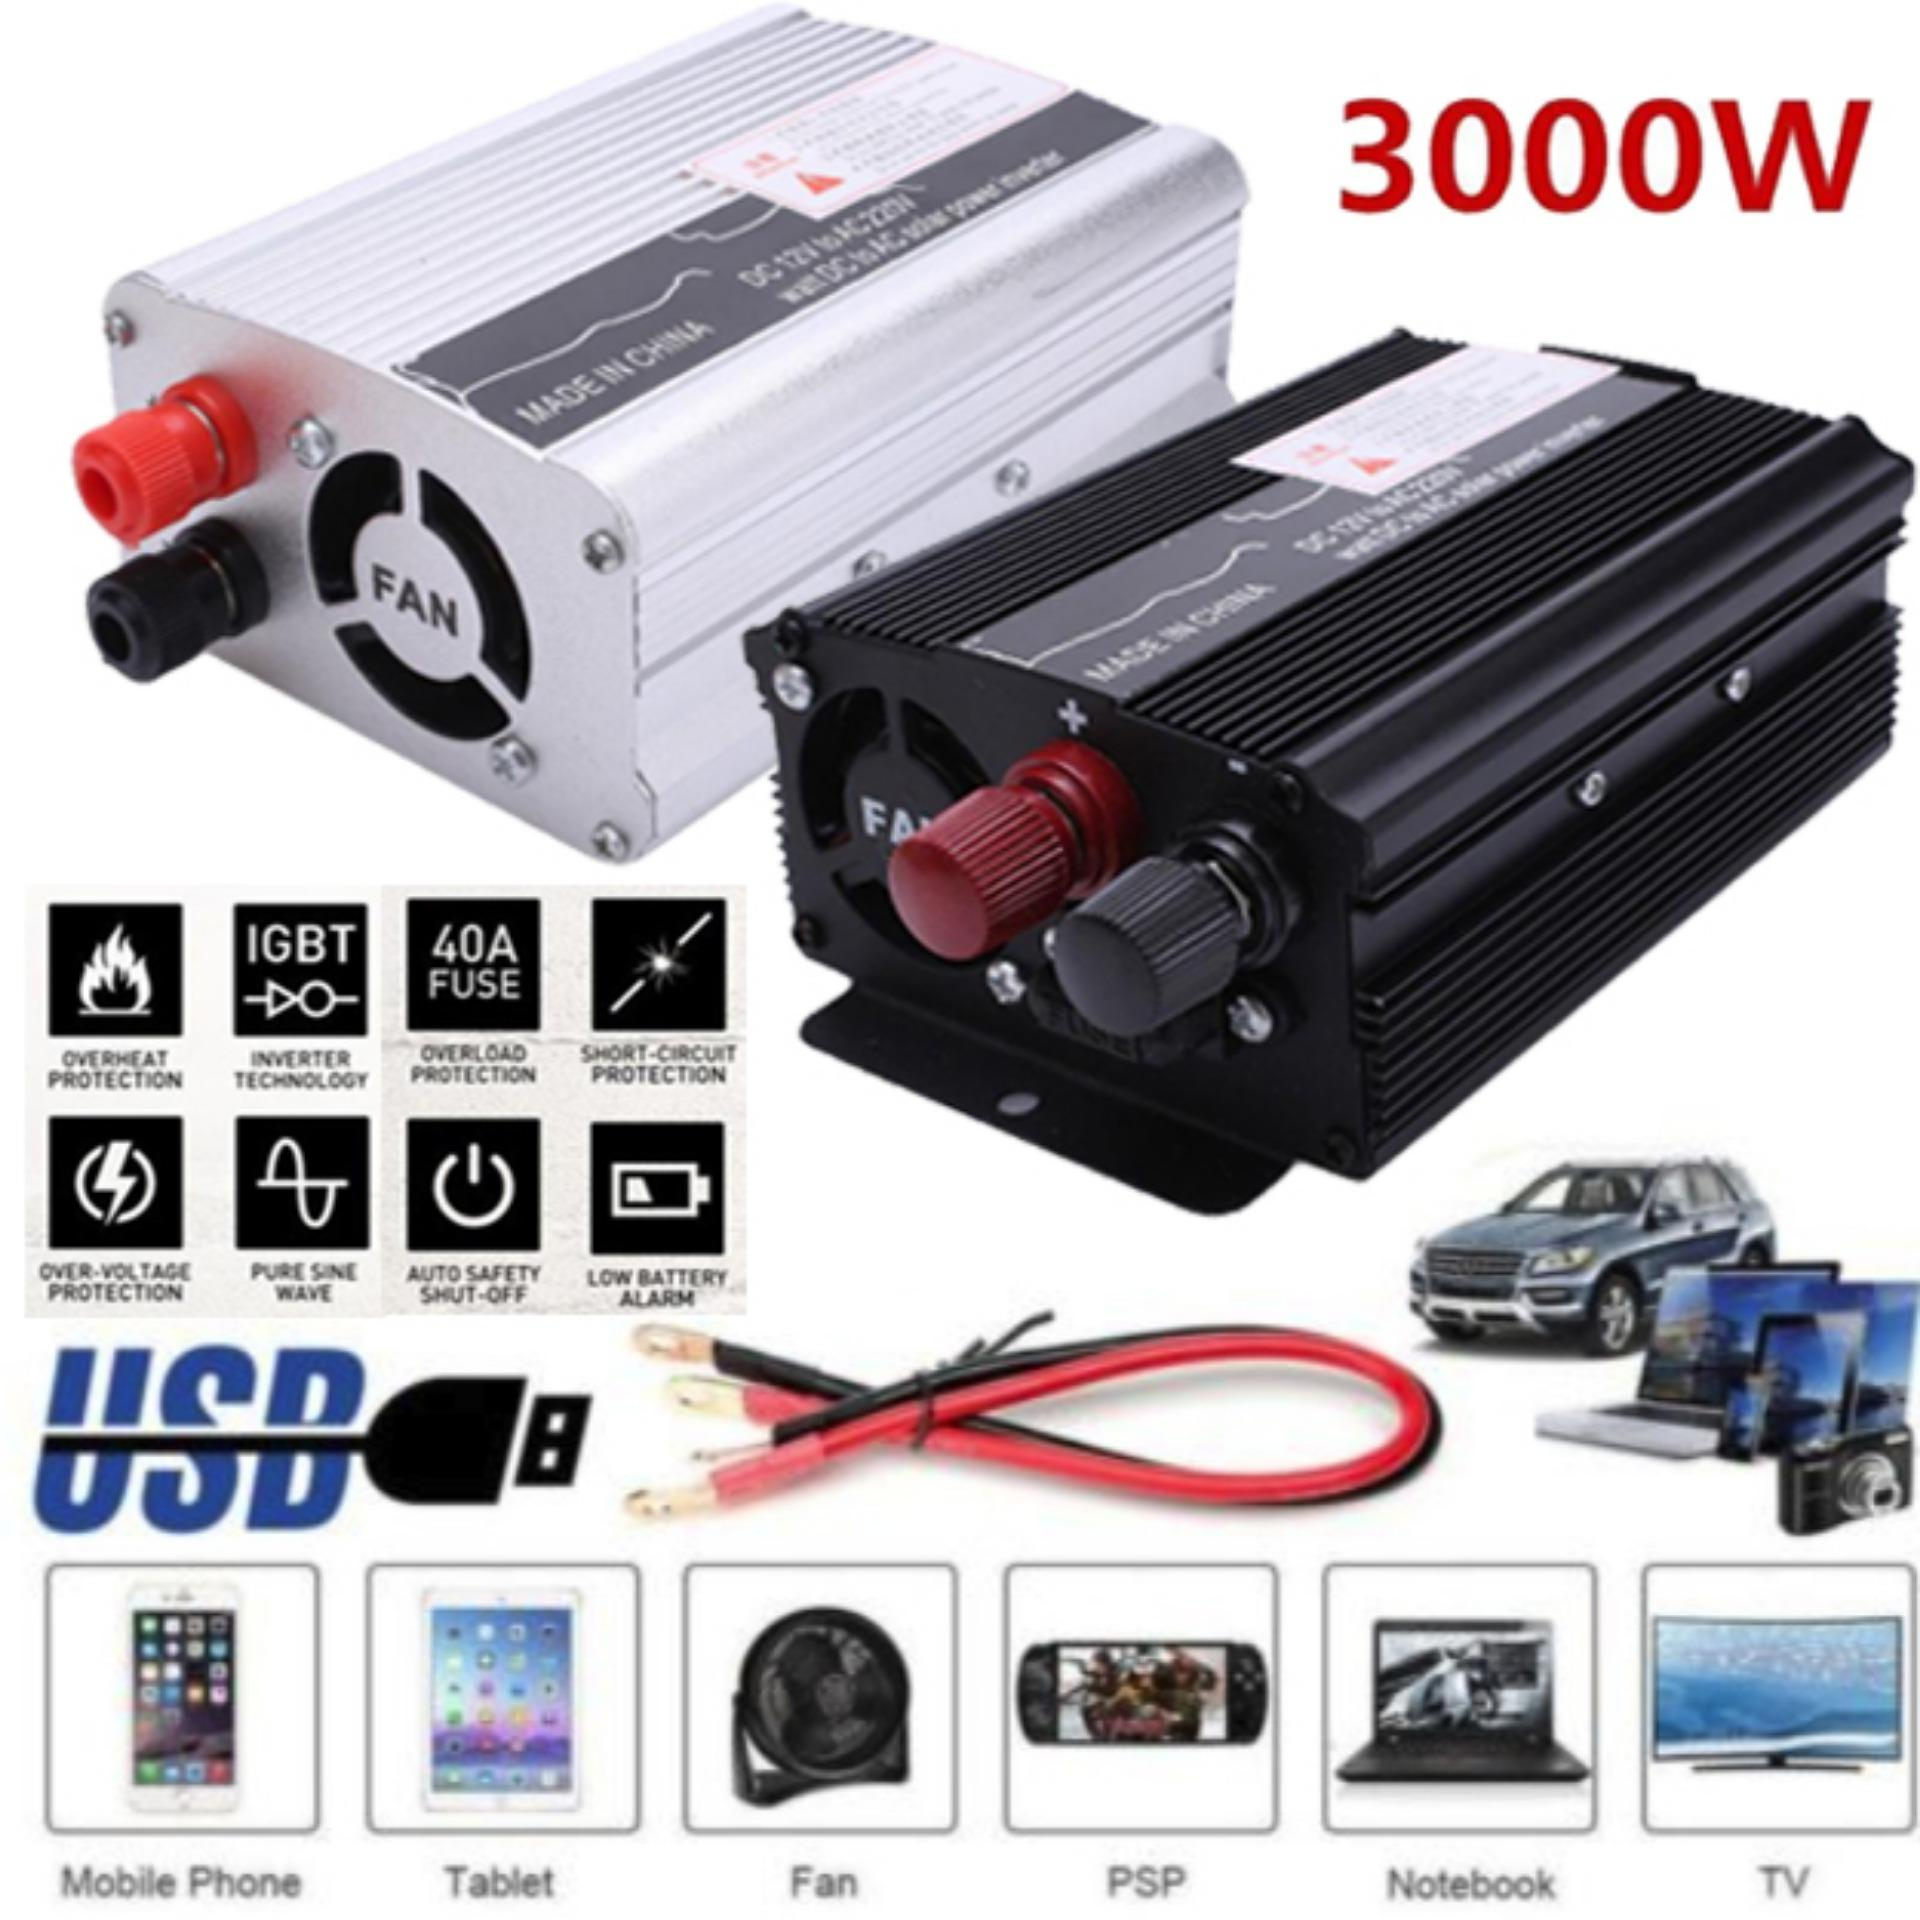 Bestprice-3000w Peak Dc 12v To Ac 220v Solar Power Inverter Converter Usb Output Stable O9 - Intl By Bestprice2015.